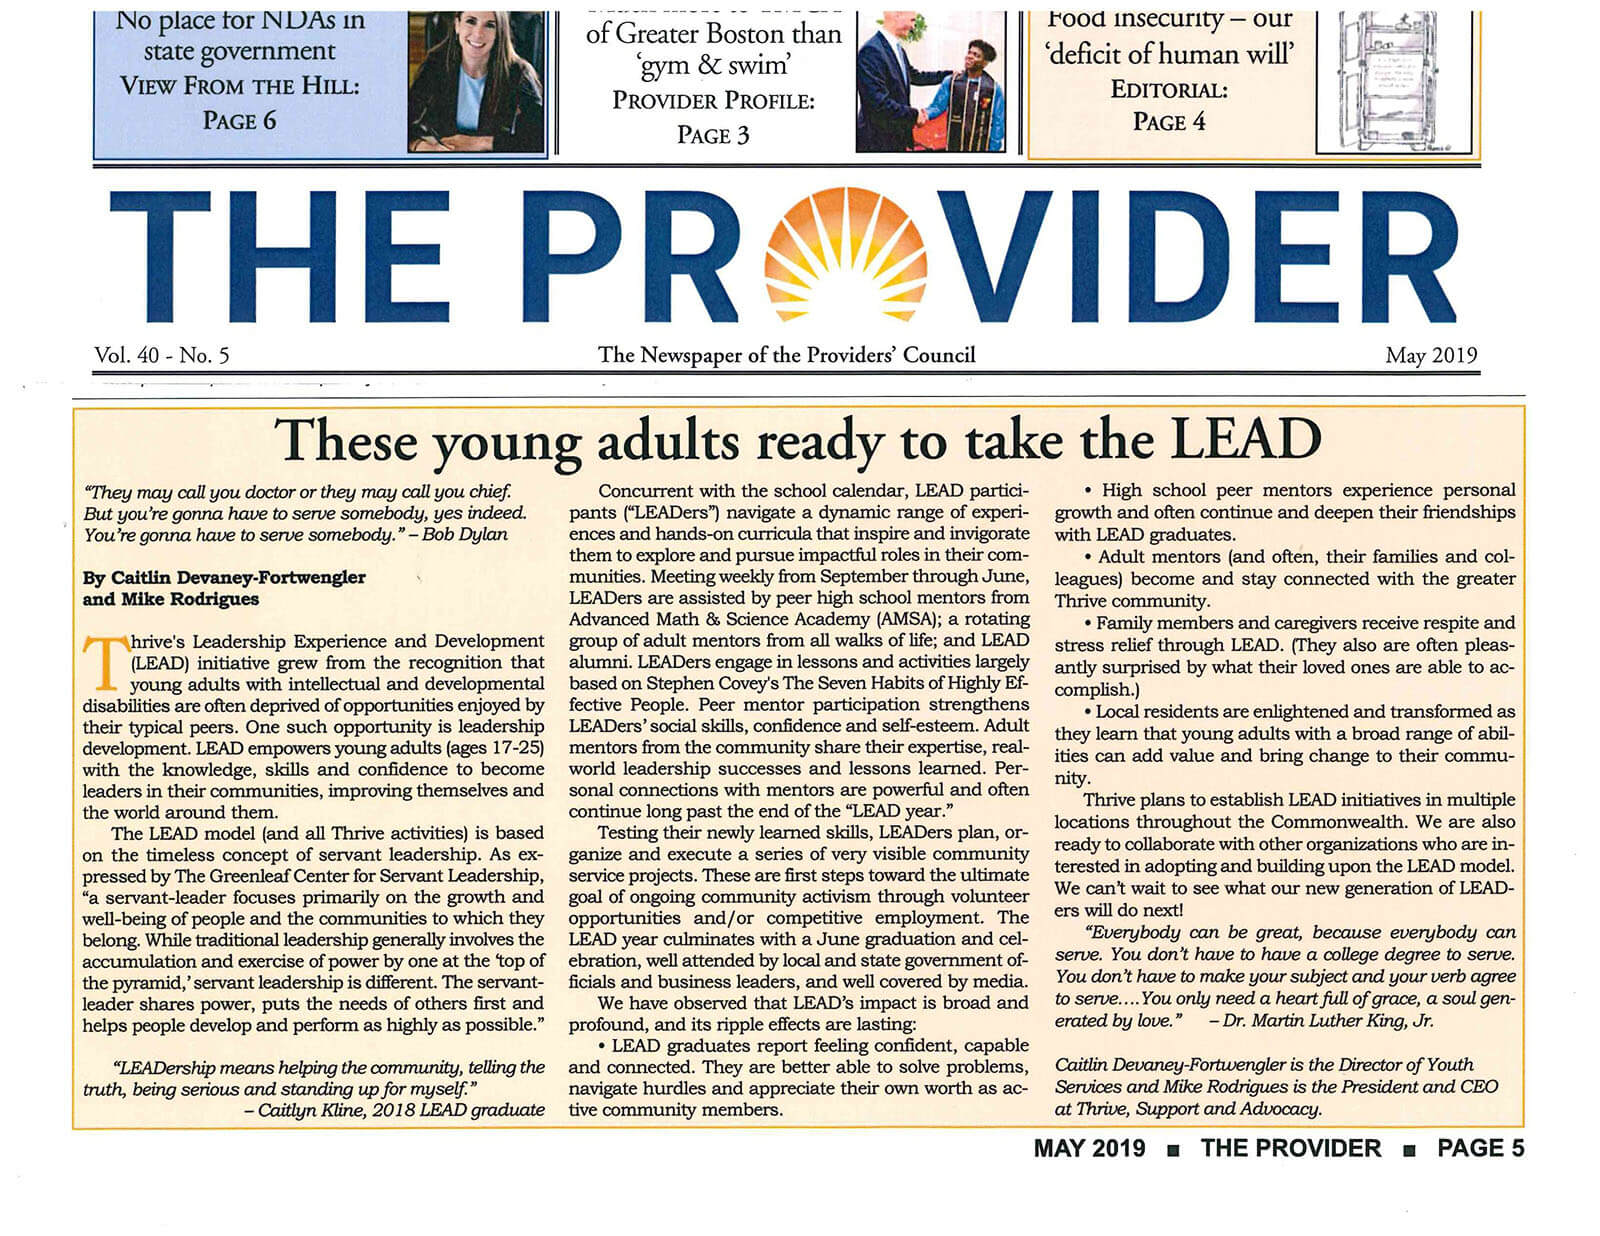 The Provider story about LEAD